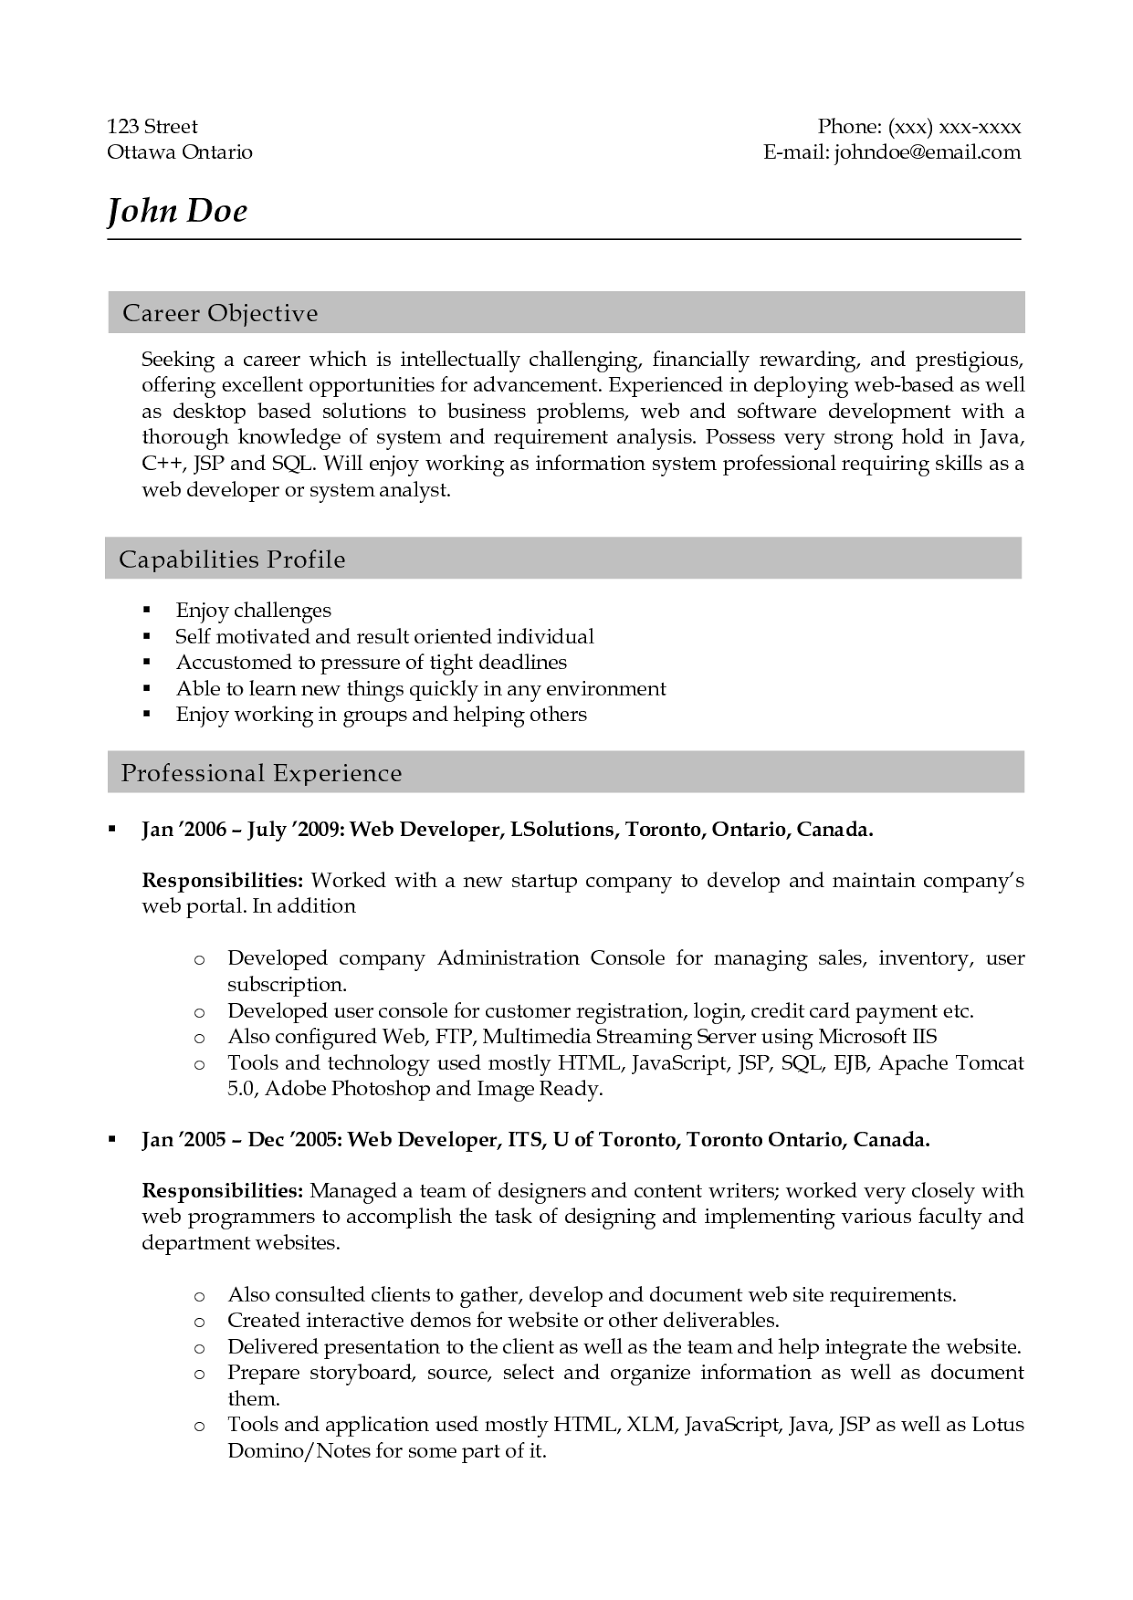 Sample Resume For Web Designer Experience Columbus